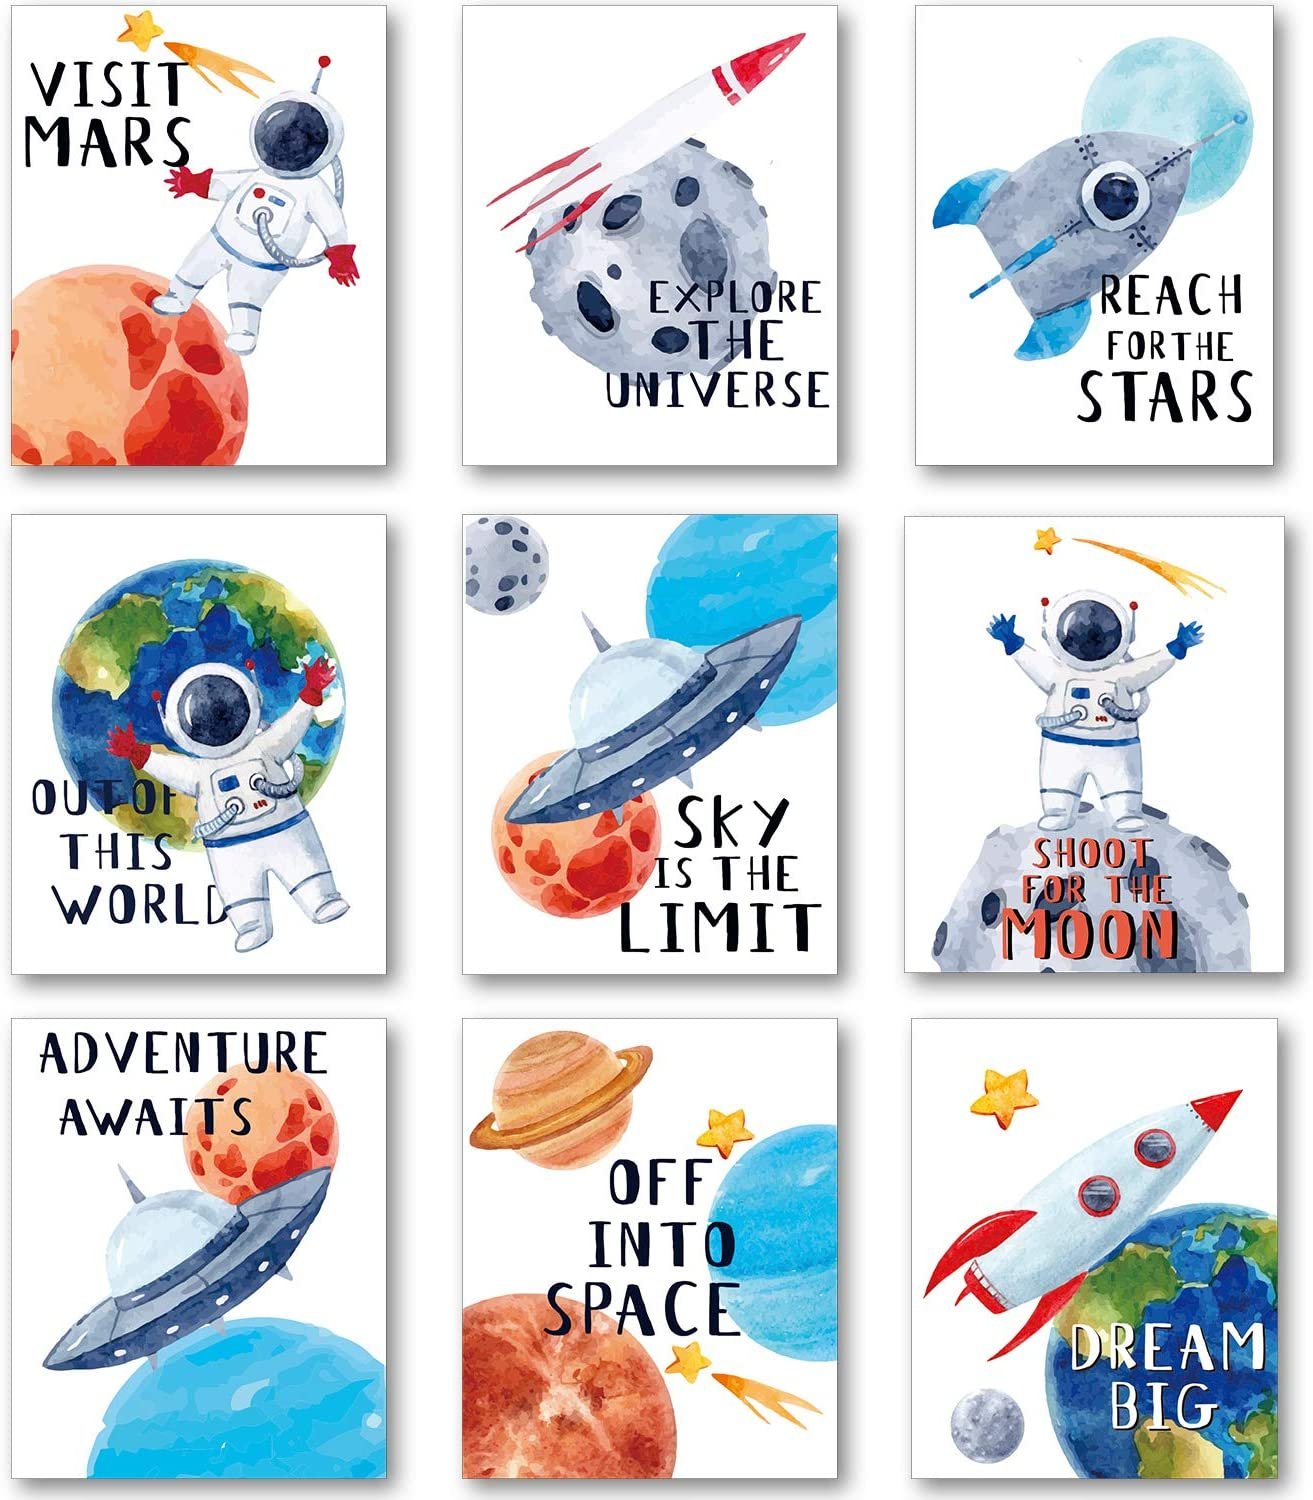 9 Pieces Outer Space Wall Poster Art Prints Kids Nursery Bedroom Space Posters Decor, 8 x 10 Inch Cute Inspirational Astronaut Planet Poster for Boy and Girl Playroom Classroom Decoration